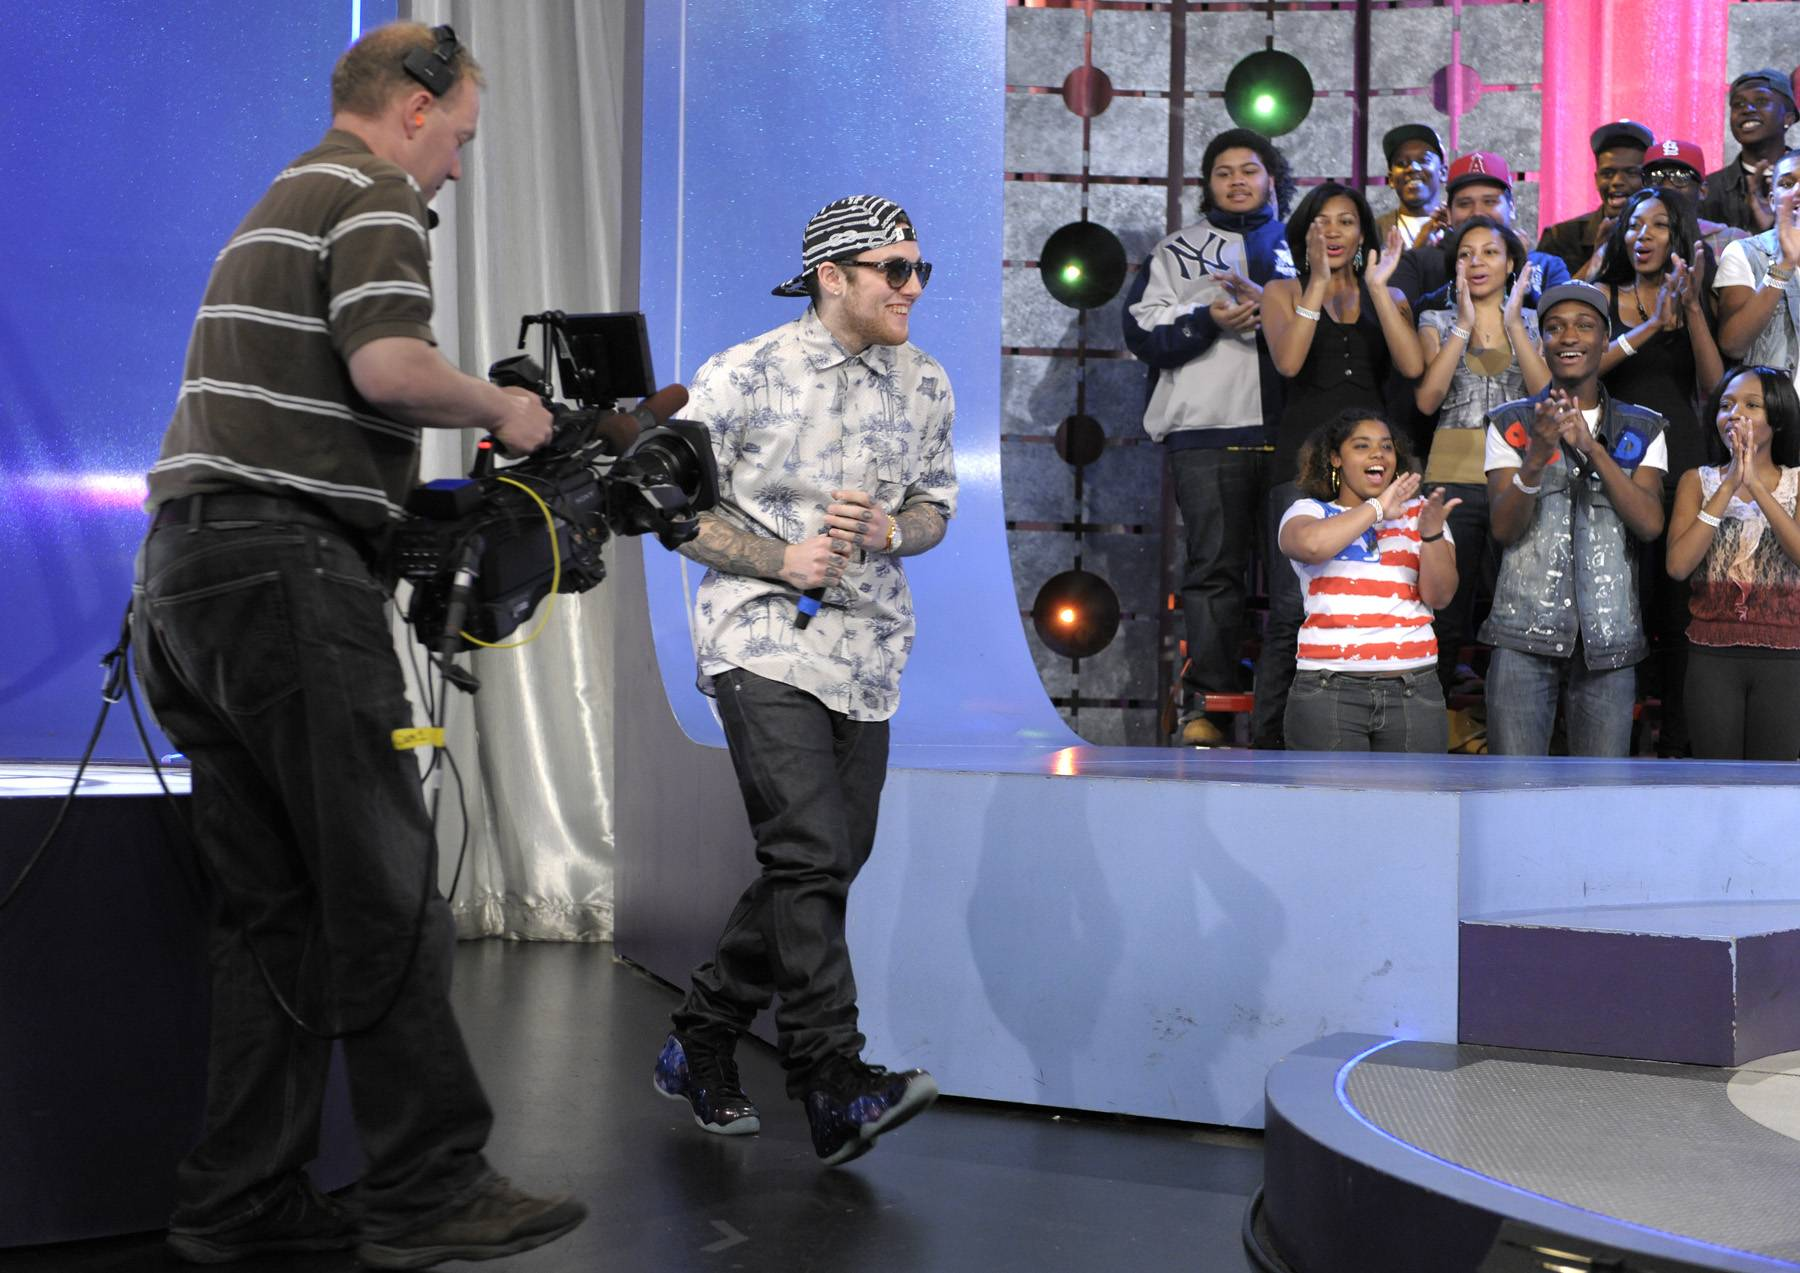 Step Right Up - Mac Miller takes the stage at 106 & Park, April 26, 2012. (Photo: John Ricard / BET)